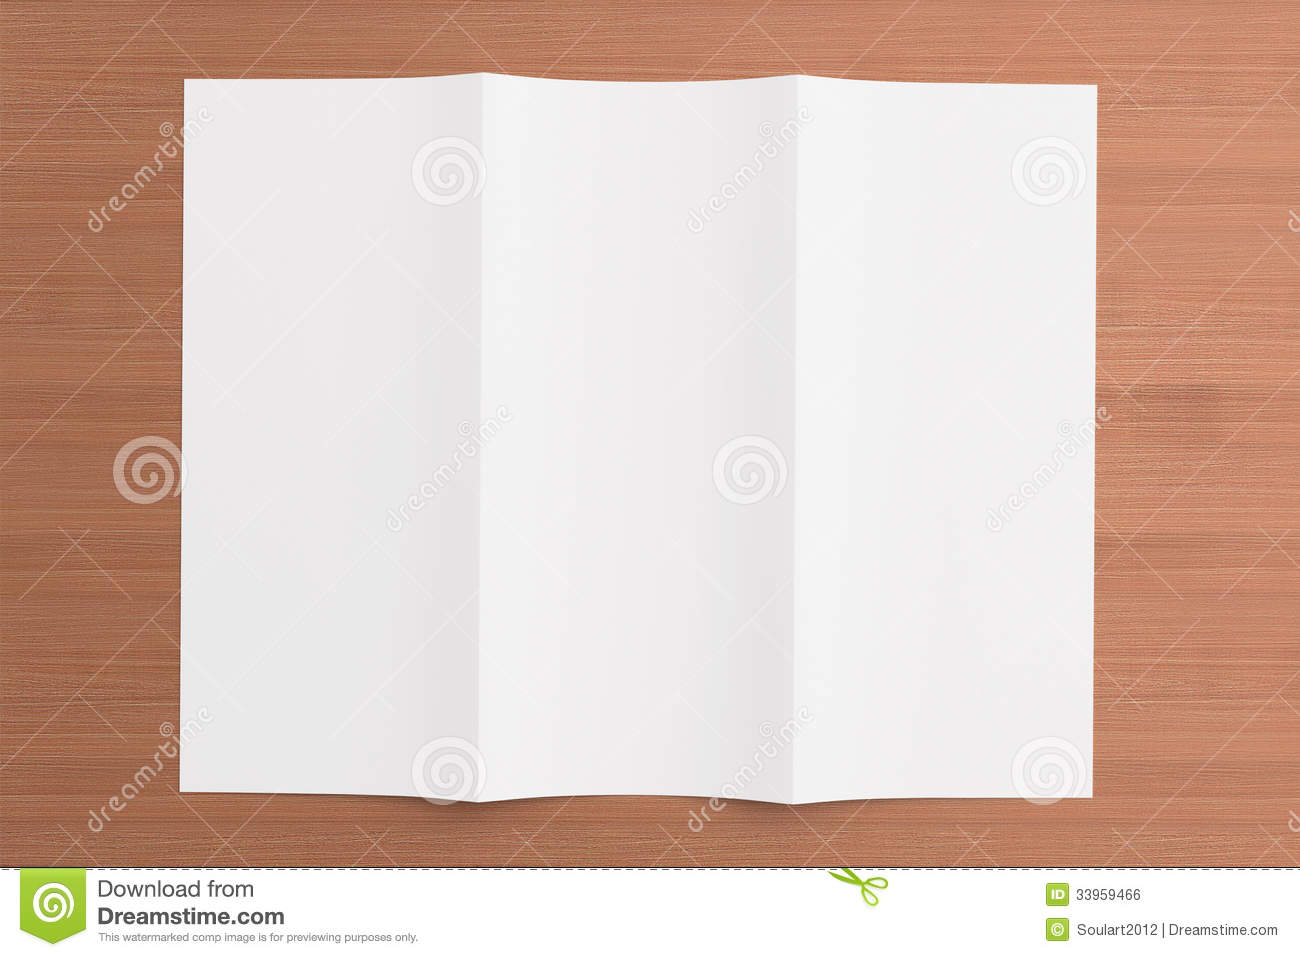 Blank tri fold brochure on wooden background stock photo for Blank tri fold brochure template free download